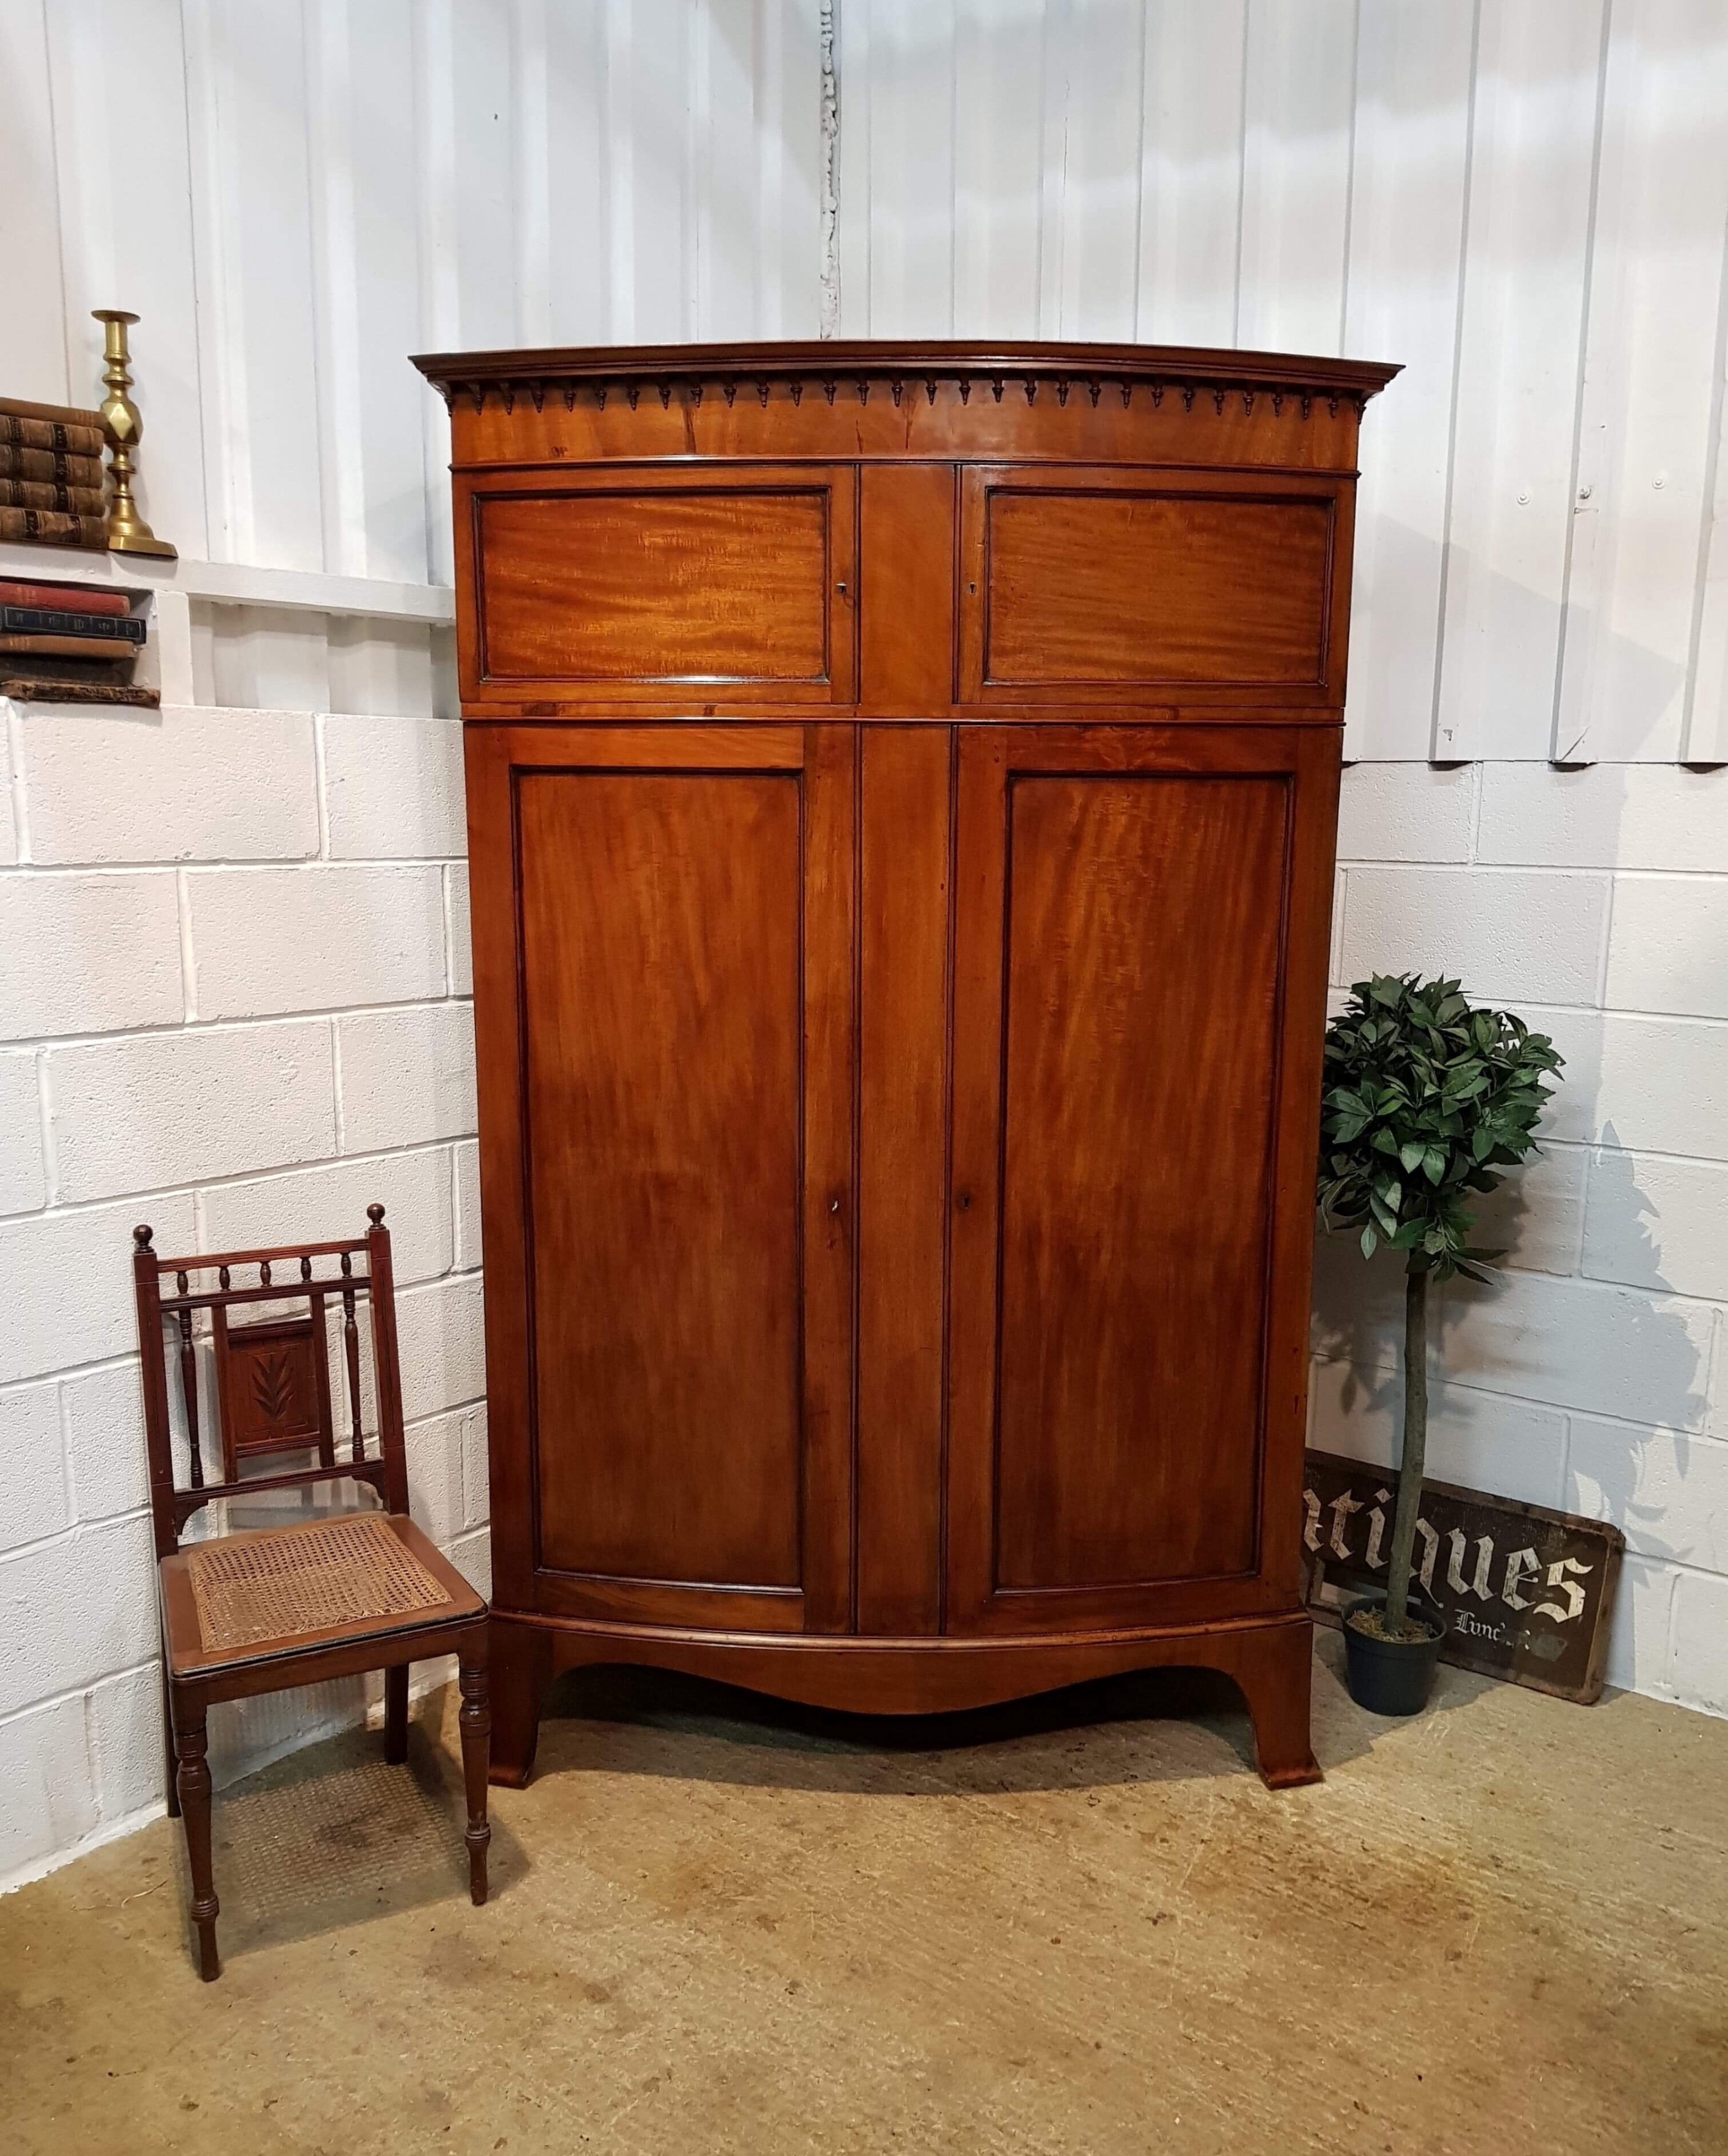 Antique Furniture Antiques The Cheapest Price Edwardian Bowfront 2 Door Oak Wardrobe With Key